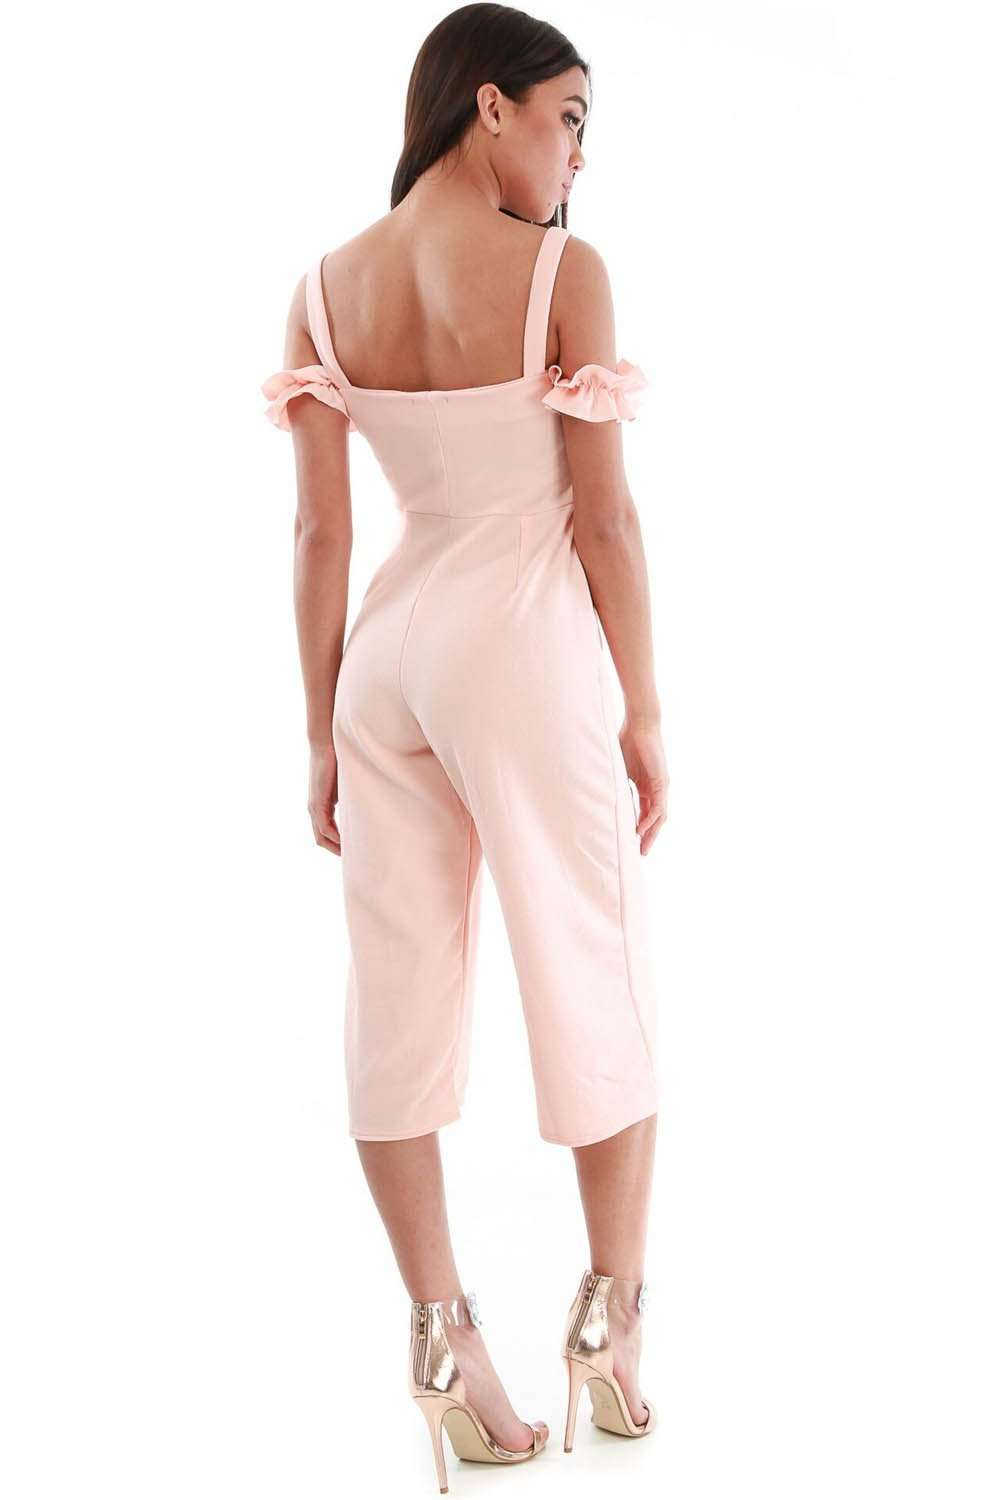 Freya Off Shoulder Culotte Leg Frilly Jumpsuit - bejealous-com